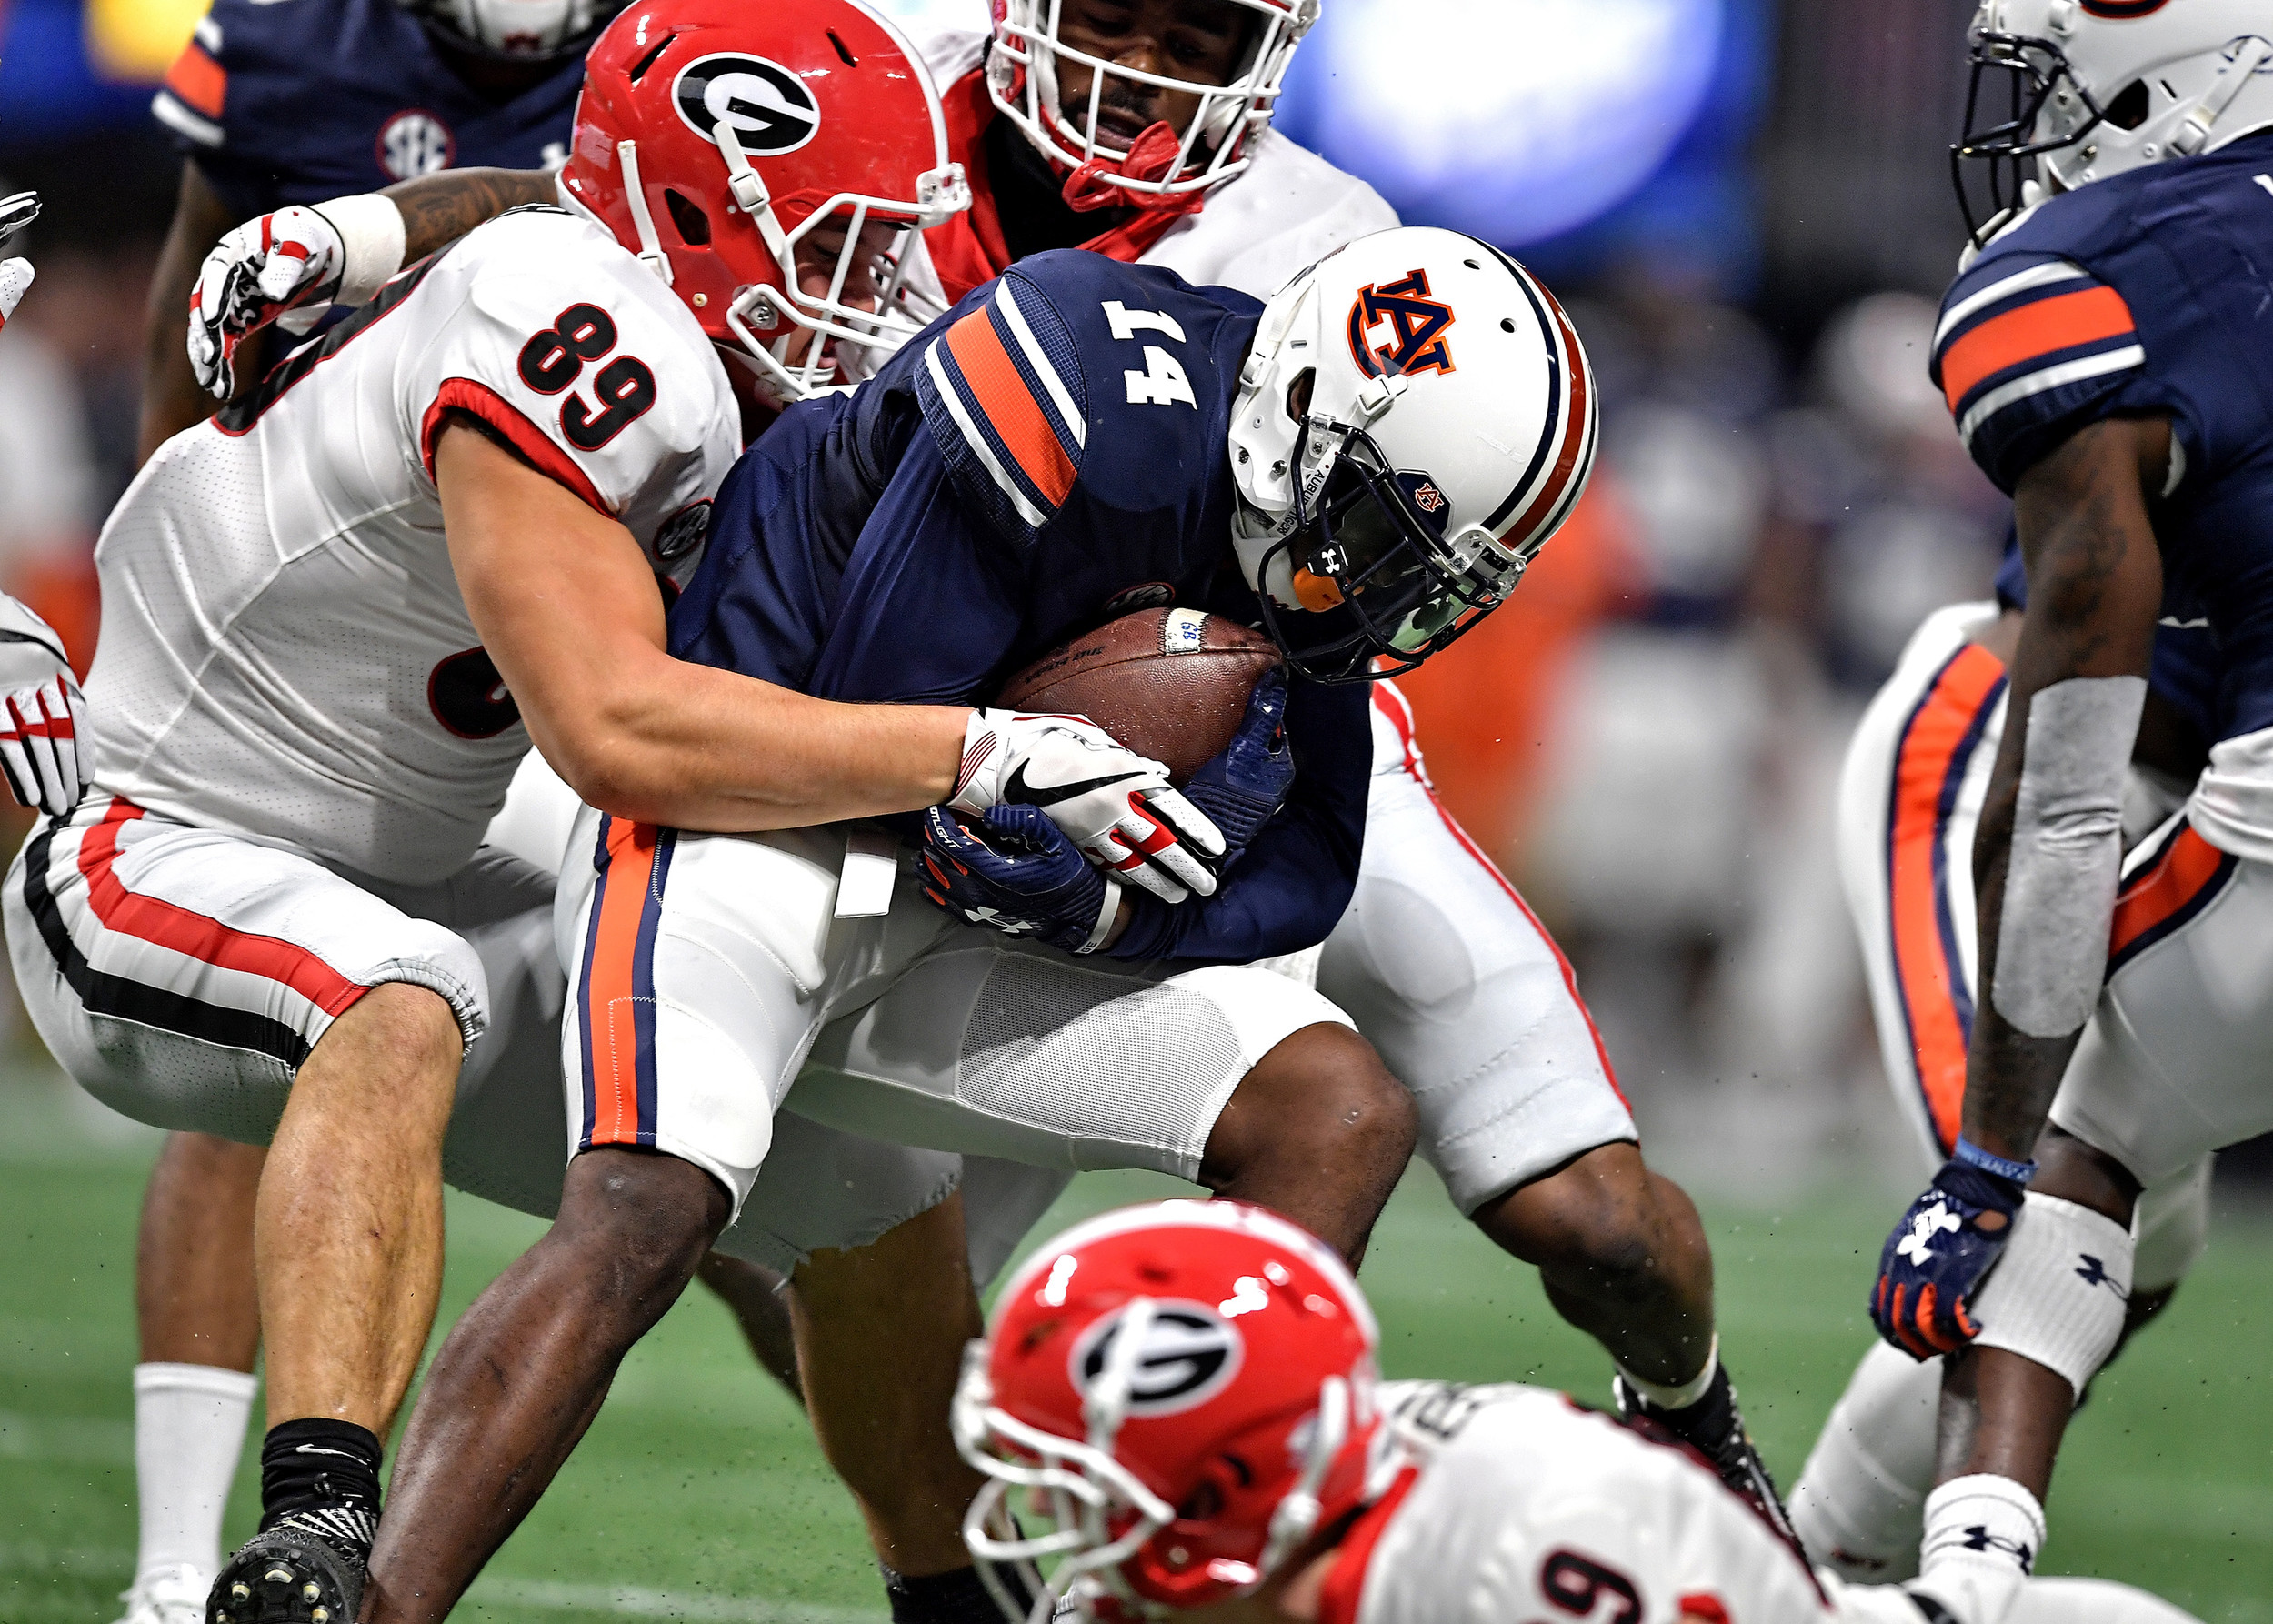 From the first half of the 2017 SEC Championship Game between the Georgia Bulldogs and the Auburn Tigers on Dec. 2, 2017, at the Mercedes-Benz Stadium in Atlanta, Ga. Georgia would go onto win 28-7. (Photo by Lee Walls)